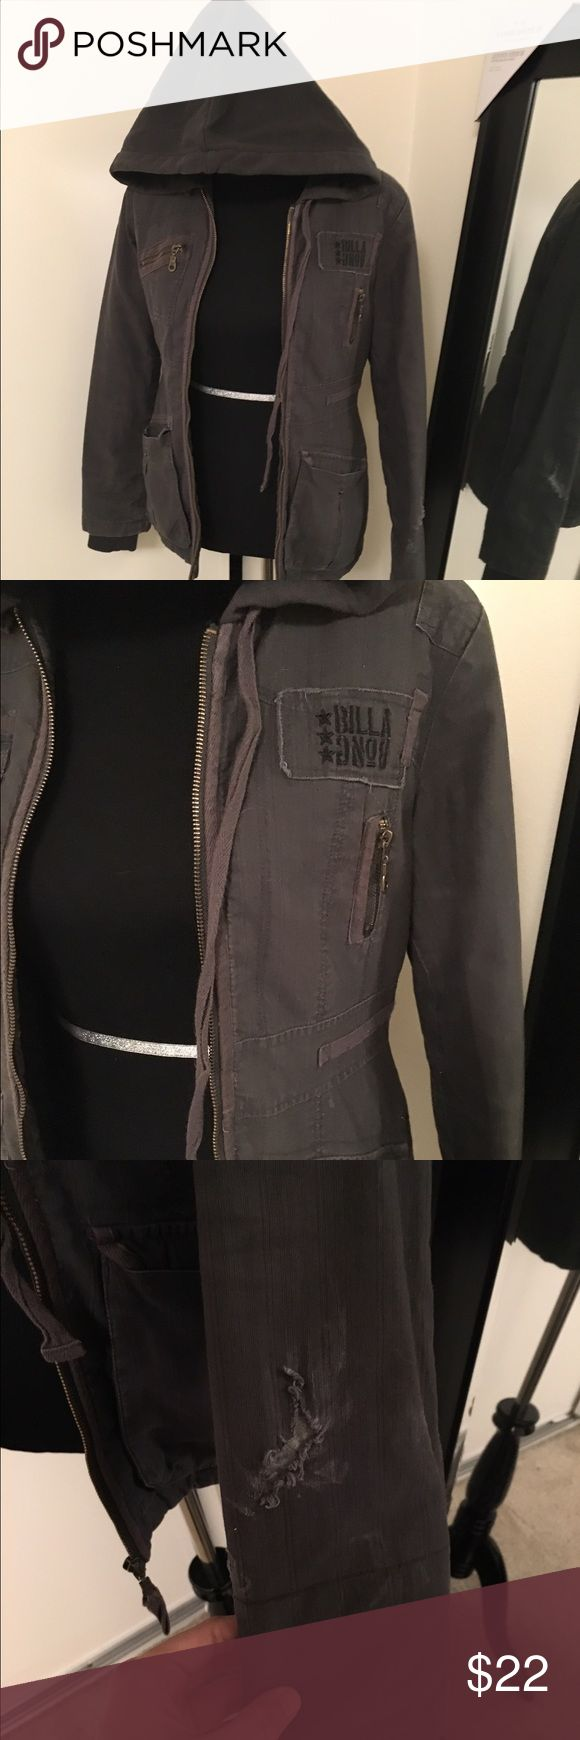 Grey zip up jacket Billabong jacket with a sweater hood and cargo like shell. Has been worn and has a tear in the arm but still functional Billabong Jackets & Coats Utility Jackets